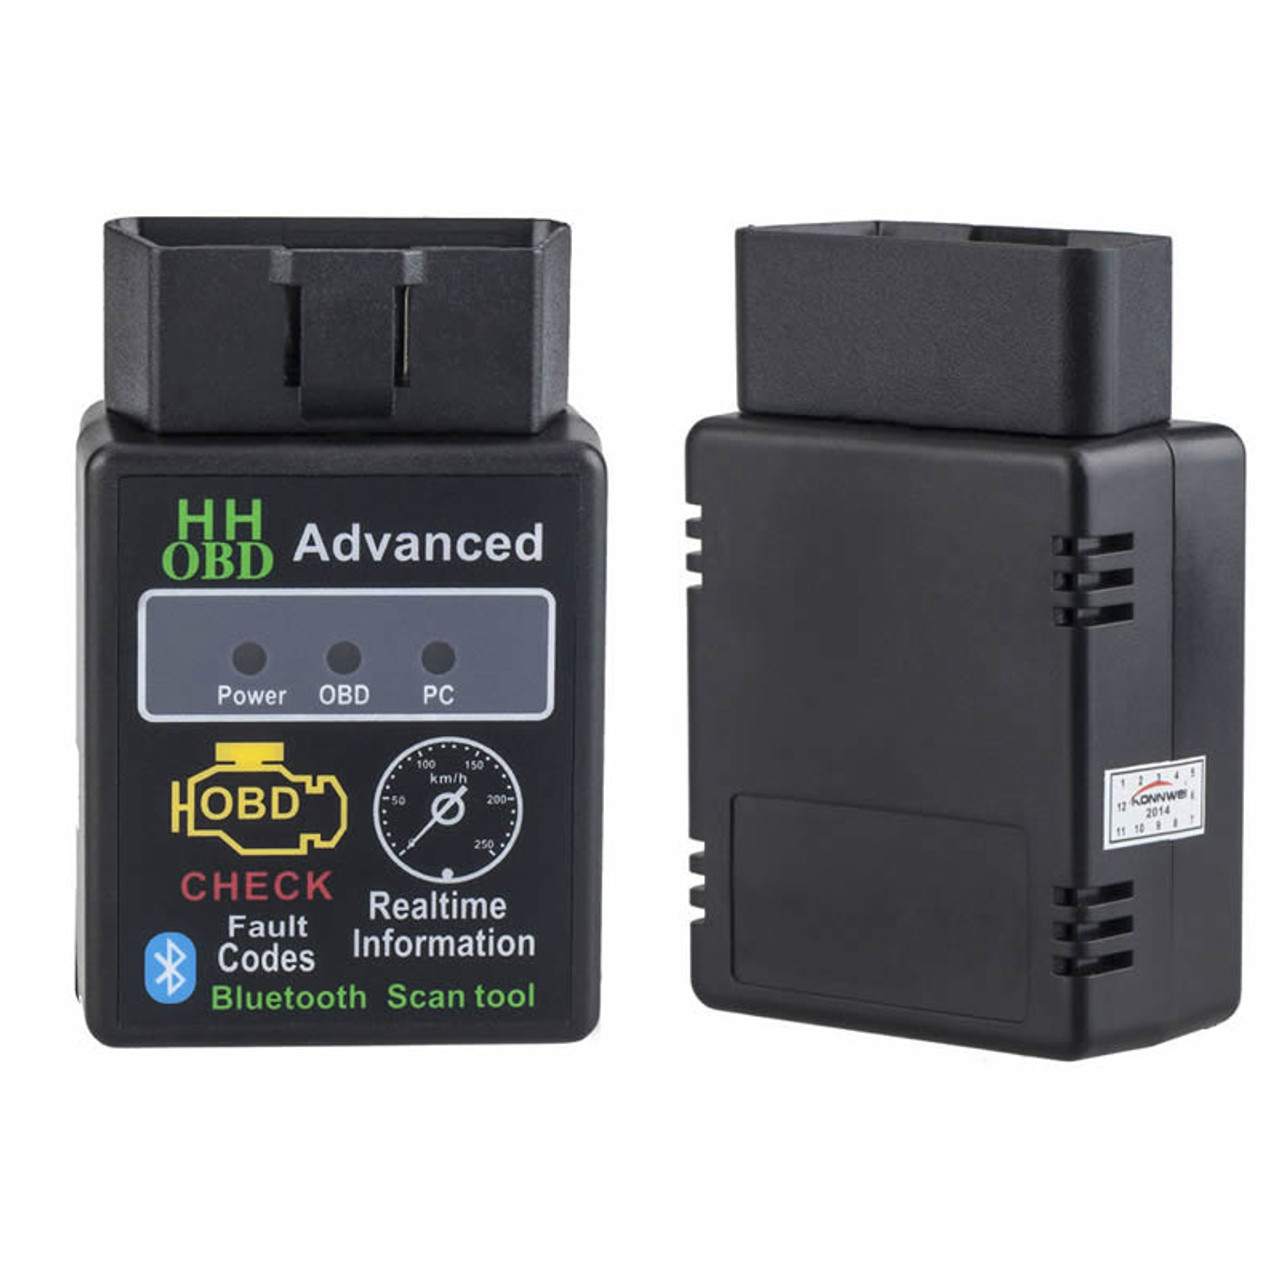 HH OBD ELM327 Bluetooth OBD2 Car Diagnostic Scanner V2 1